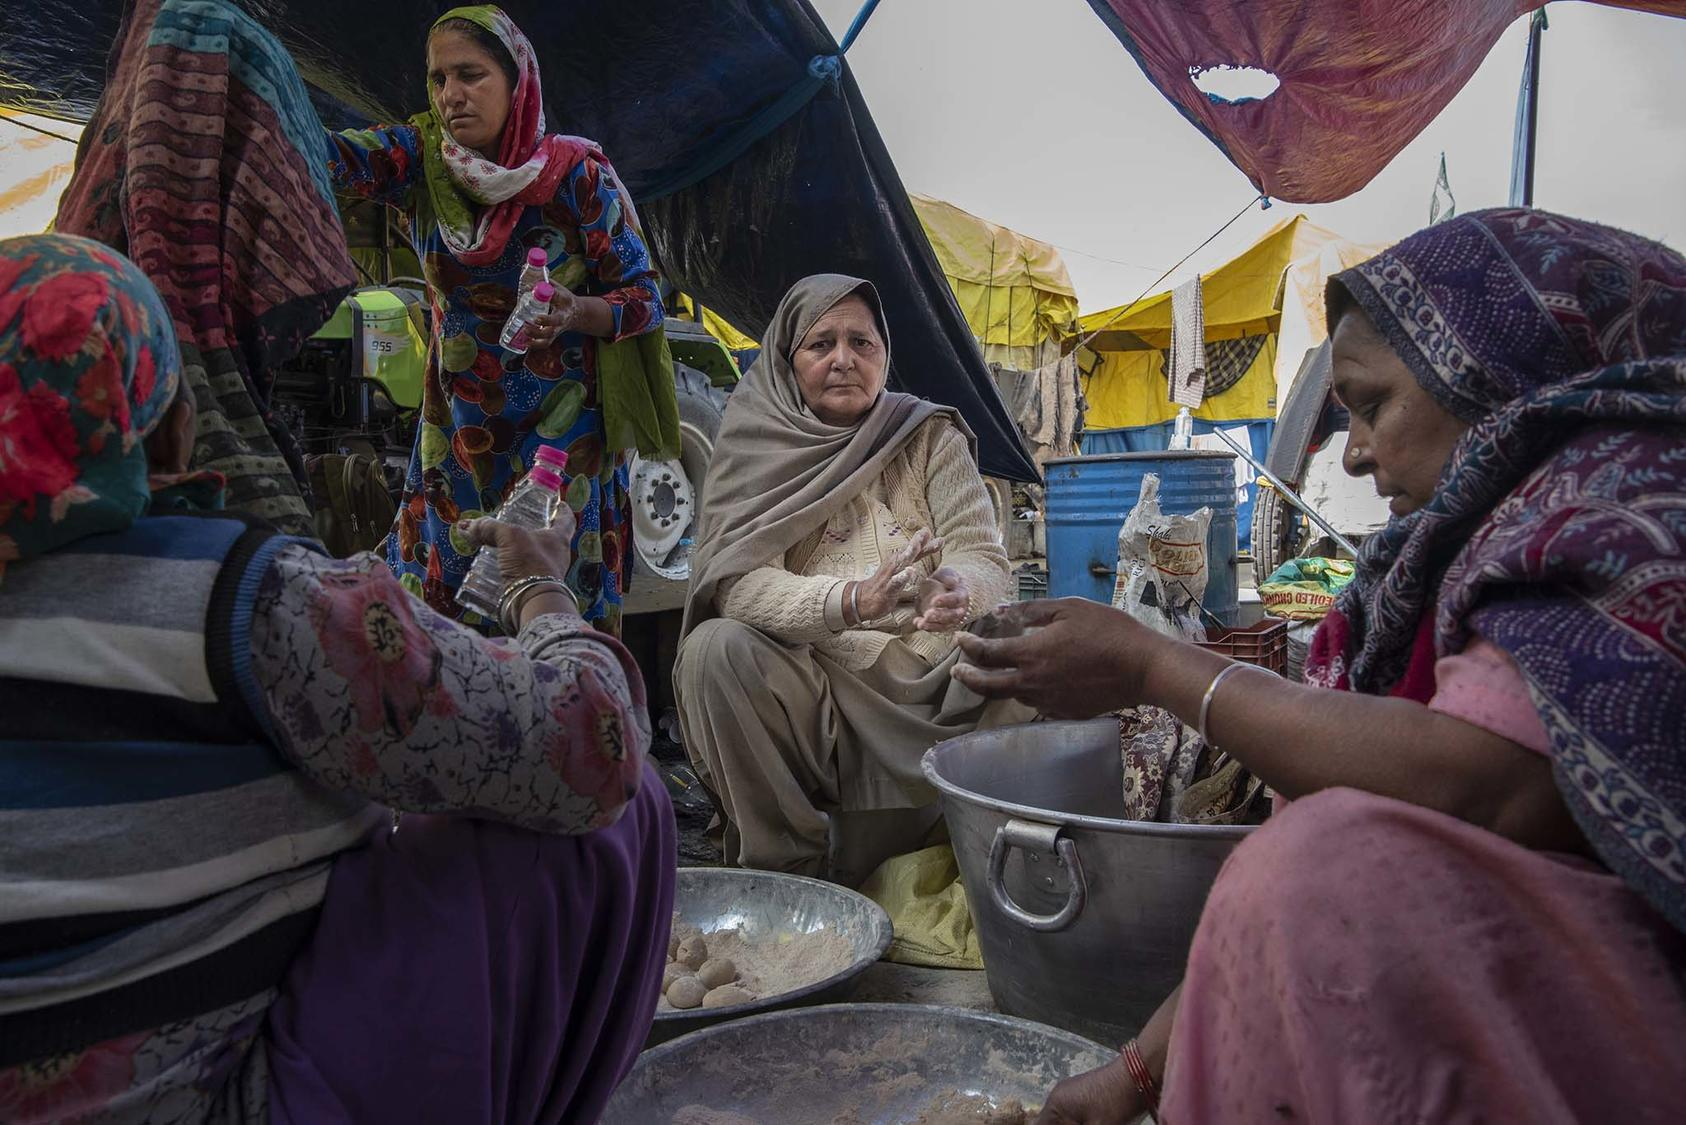 Gurmeet Kaur, center, preparing chapati, in Singhu, India, Jan. 4, 2021. Protesters have created camps around Delhi that are virtual cities unto themselves, using own organizational skills to protest new government farm policies. (Saumya Khandelwal/The New York Times)